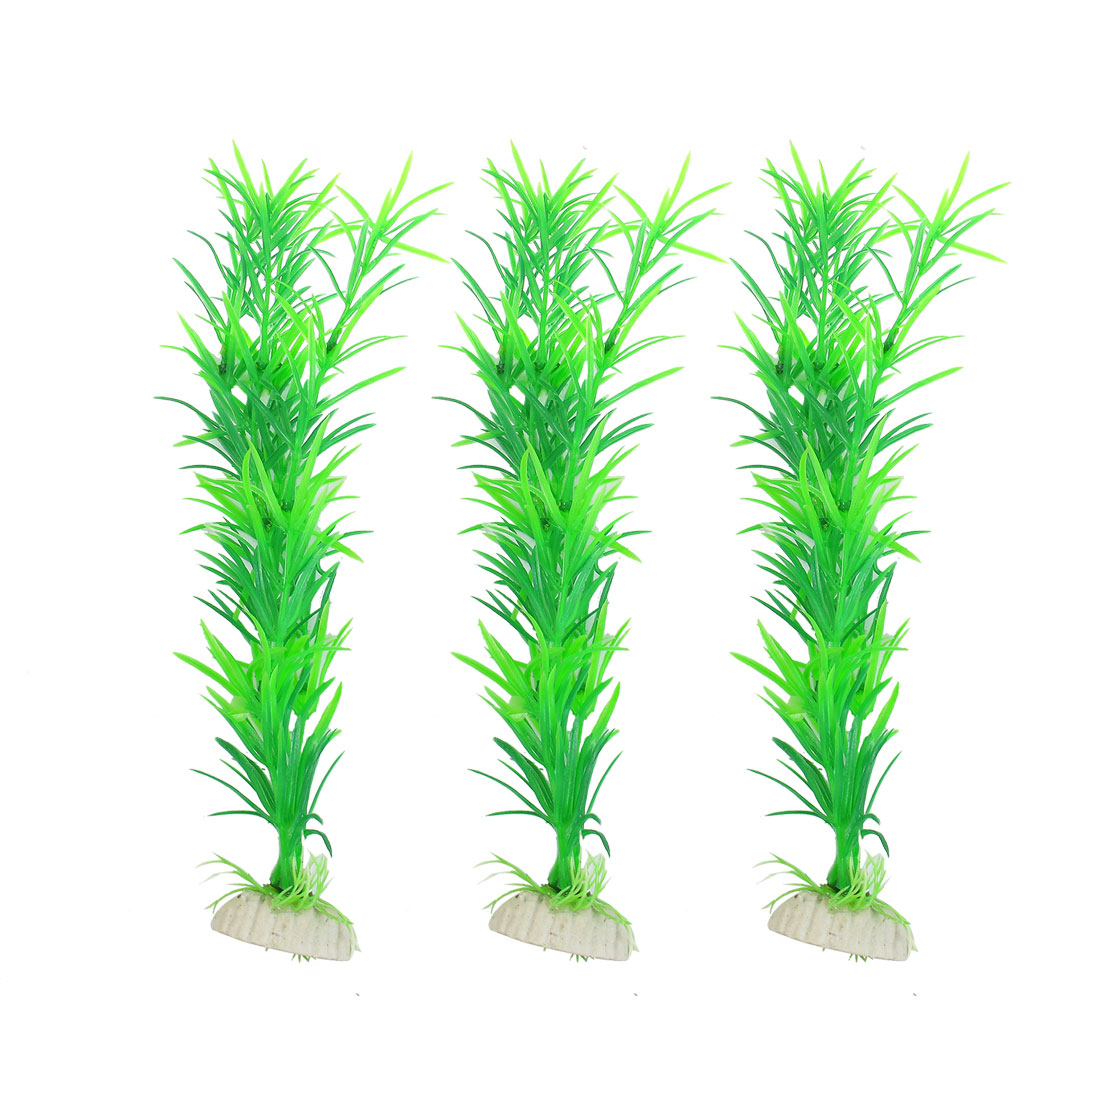 "3 Pcs 11.4"" Height Green Plastic Aquatic Grass Plants for Aquarium Fish Tank"